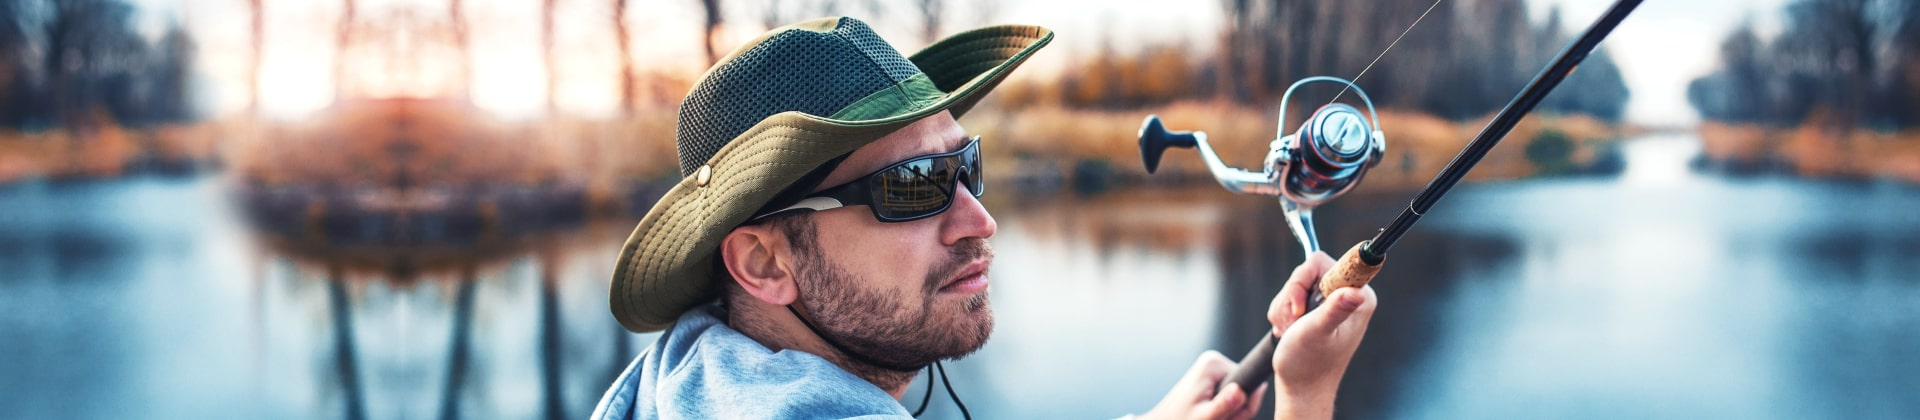 Best Fishing Sunglasses Reviewed in Detail